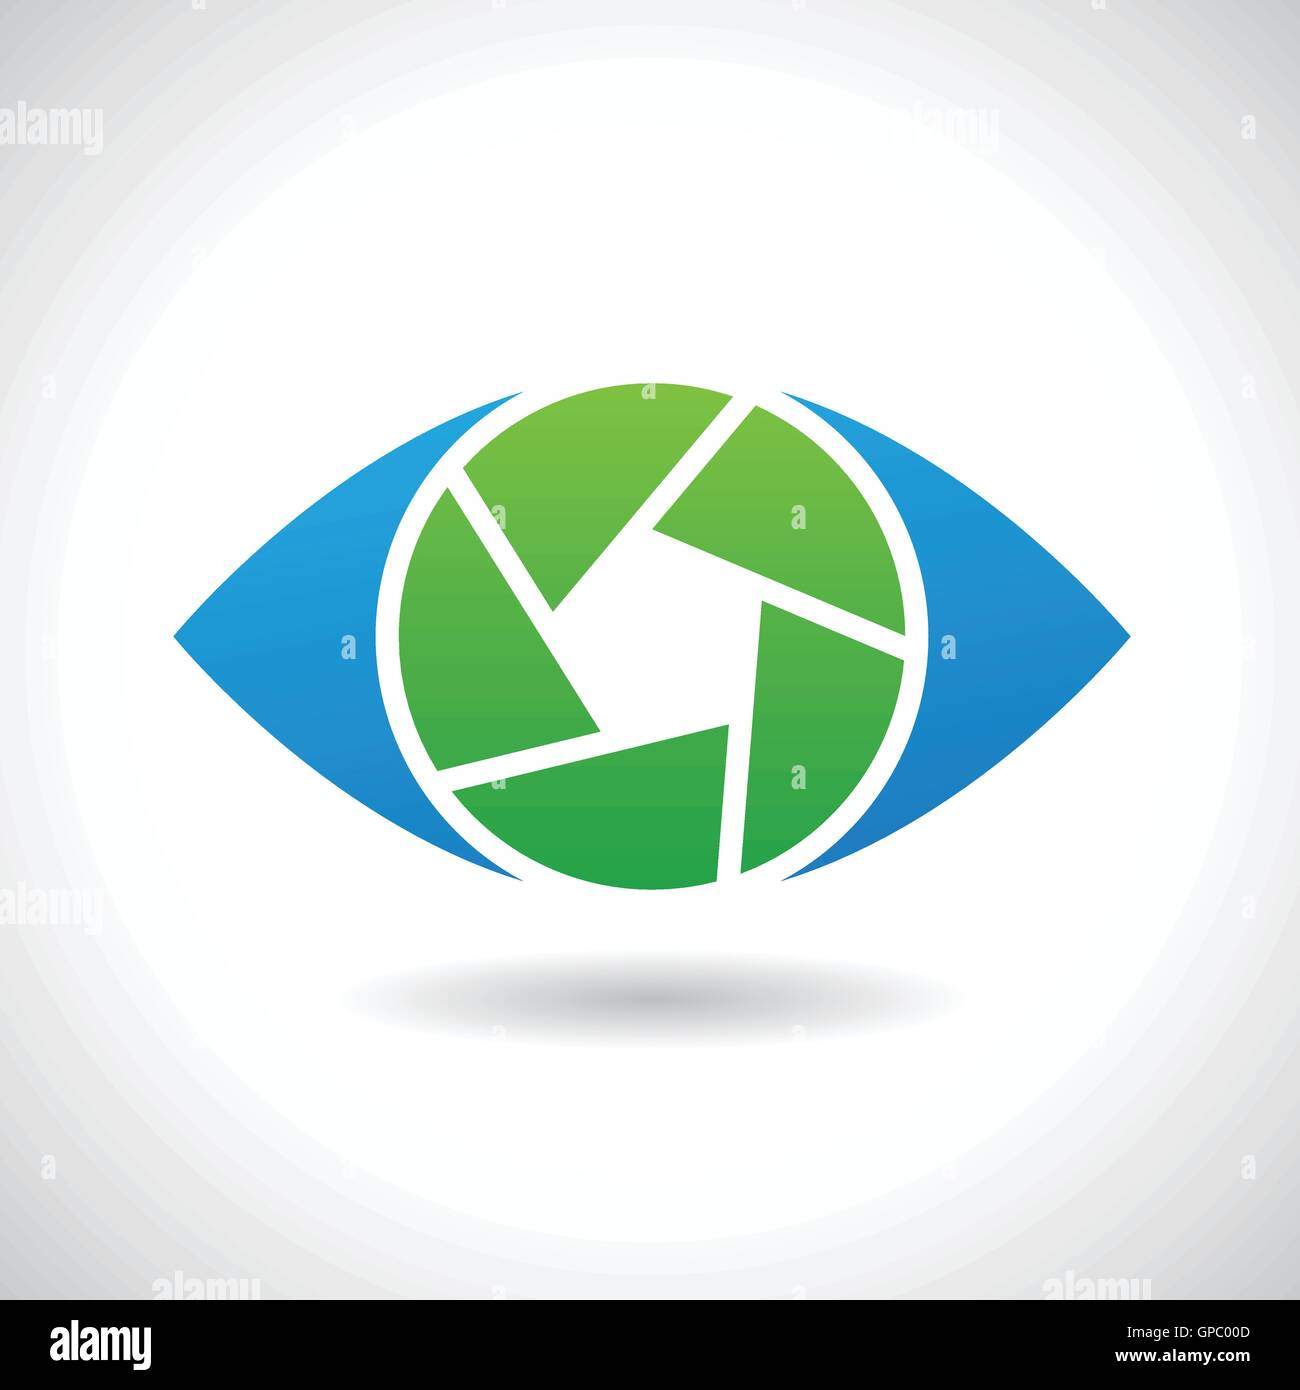 hight resolution of design concept of a logo shape and icon of a shutter eye